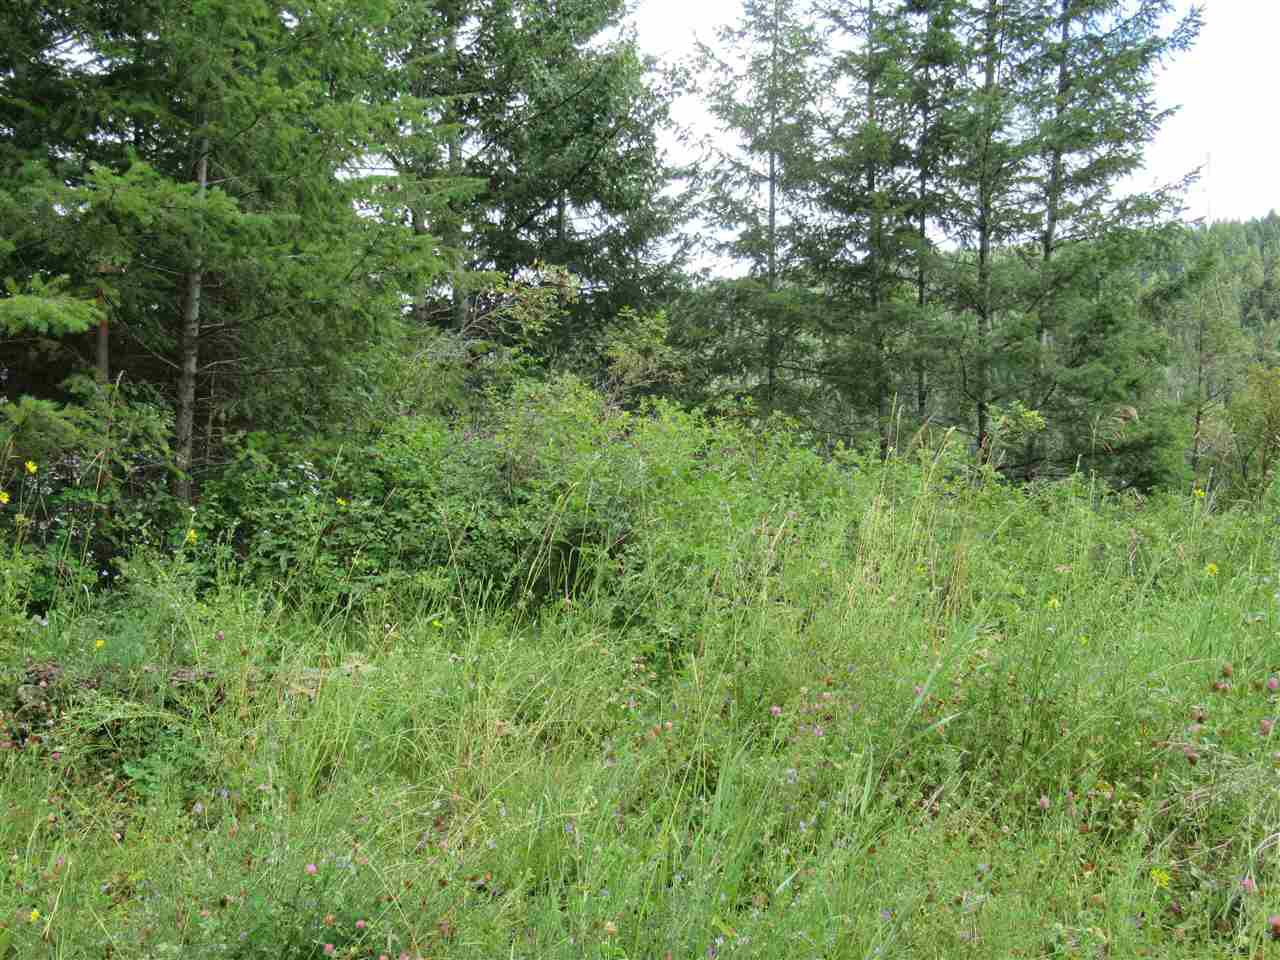 Photo 7: Photos: LOT A FIRDALE Drive in Williams Lake: Williams Lake - Rural North Land for sale (Williams Lake (Zone 27))  : MLS®# R2485053